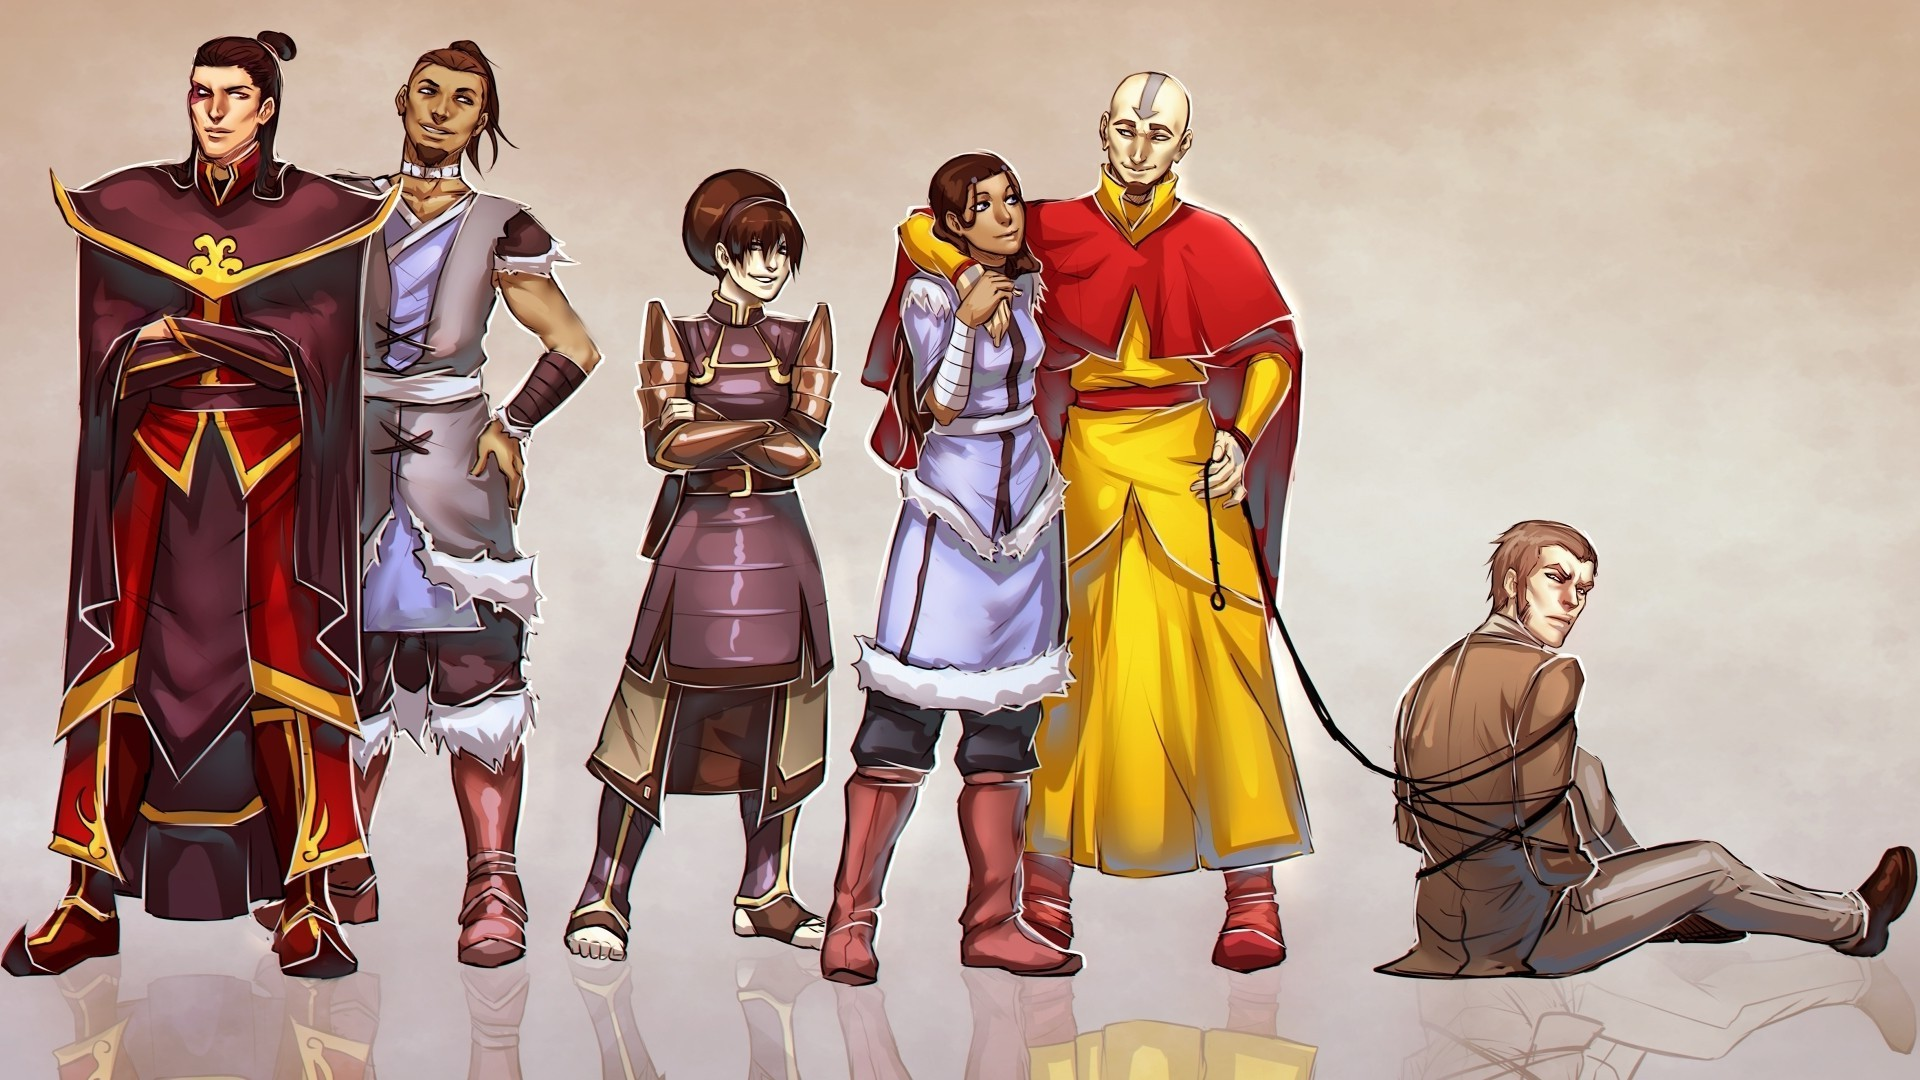 Free download Avatar The Last Airbender wallpaper 15271 ...